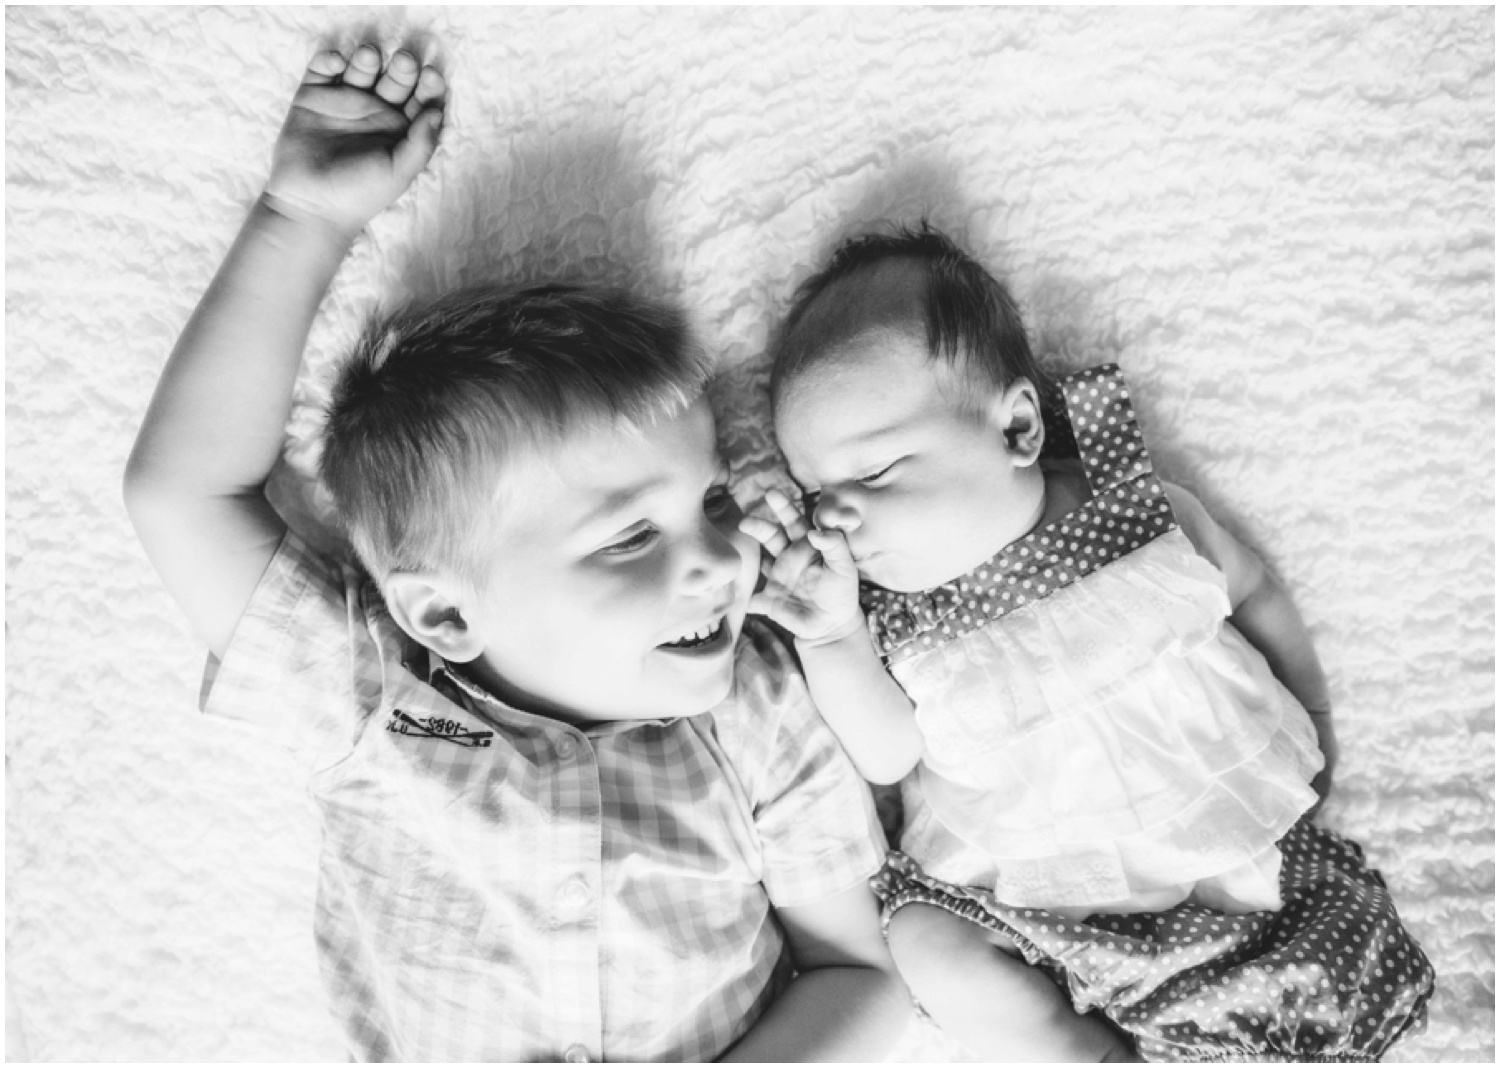 newborn baby photography at home ashford kent photographer brother siblings